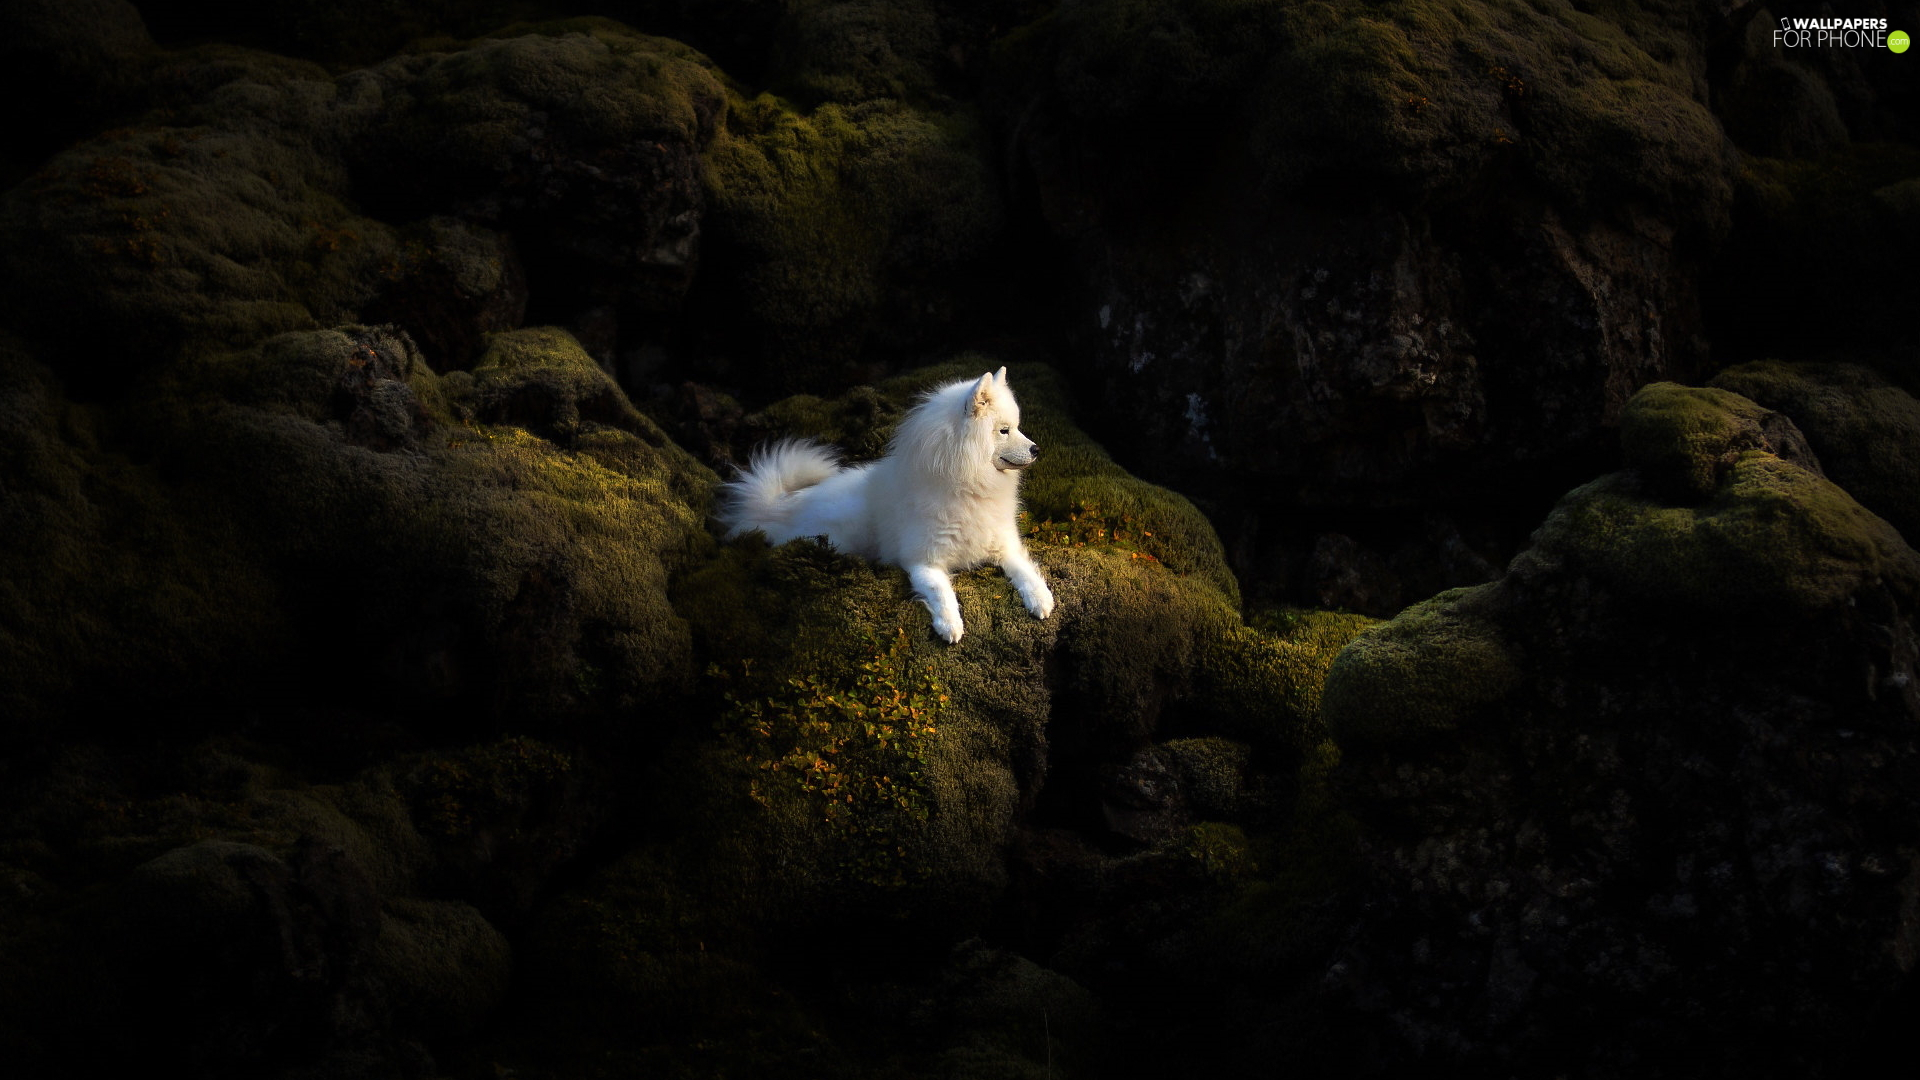 White, Samojed, rocks, dog